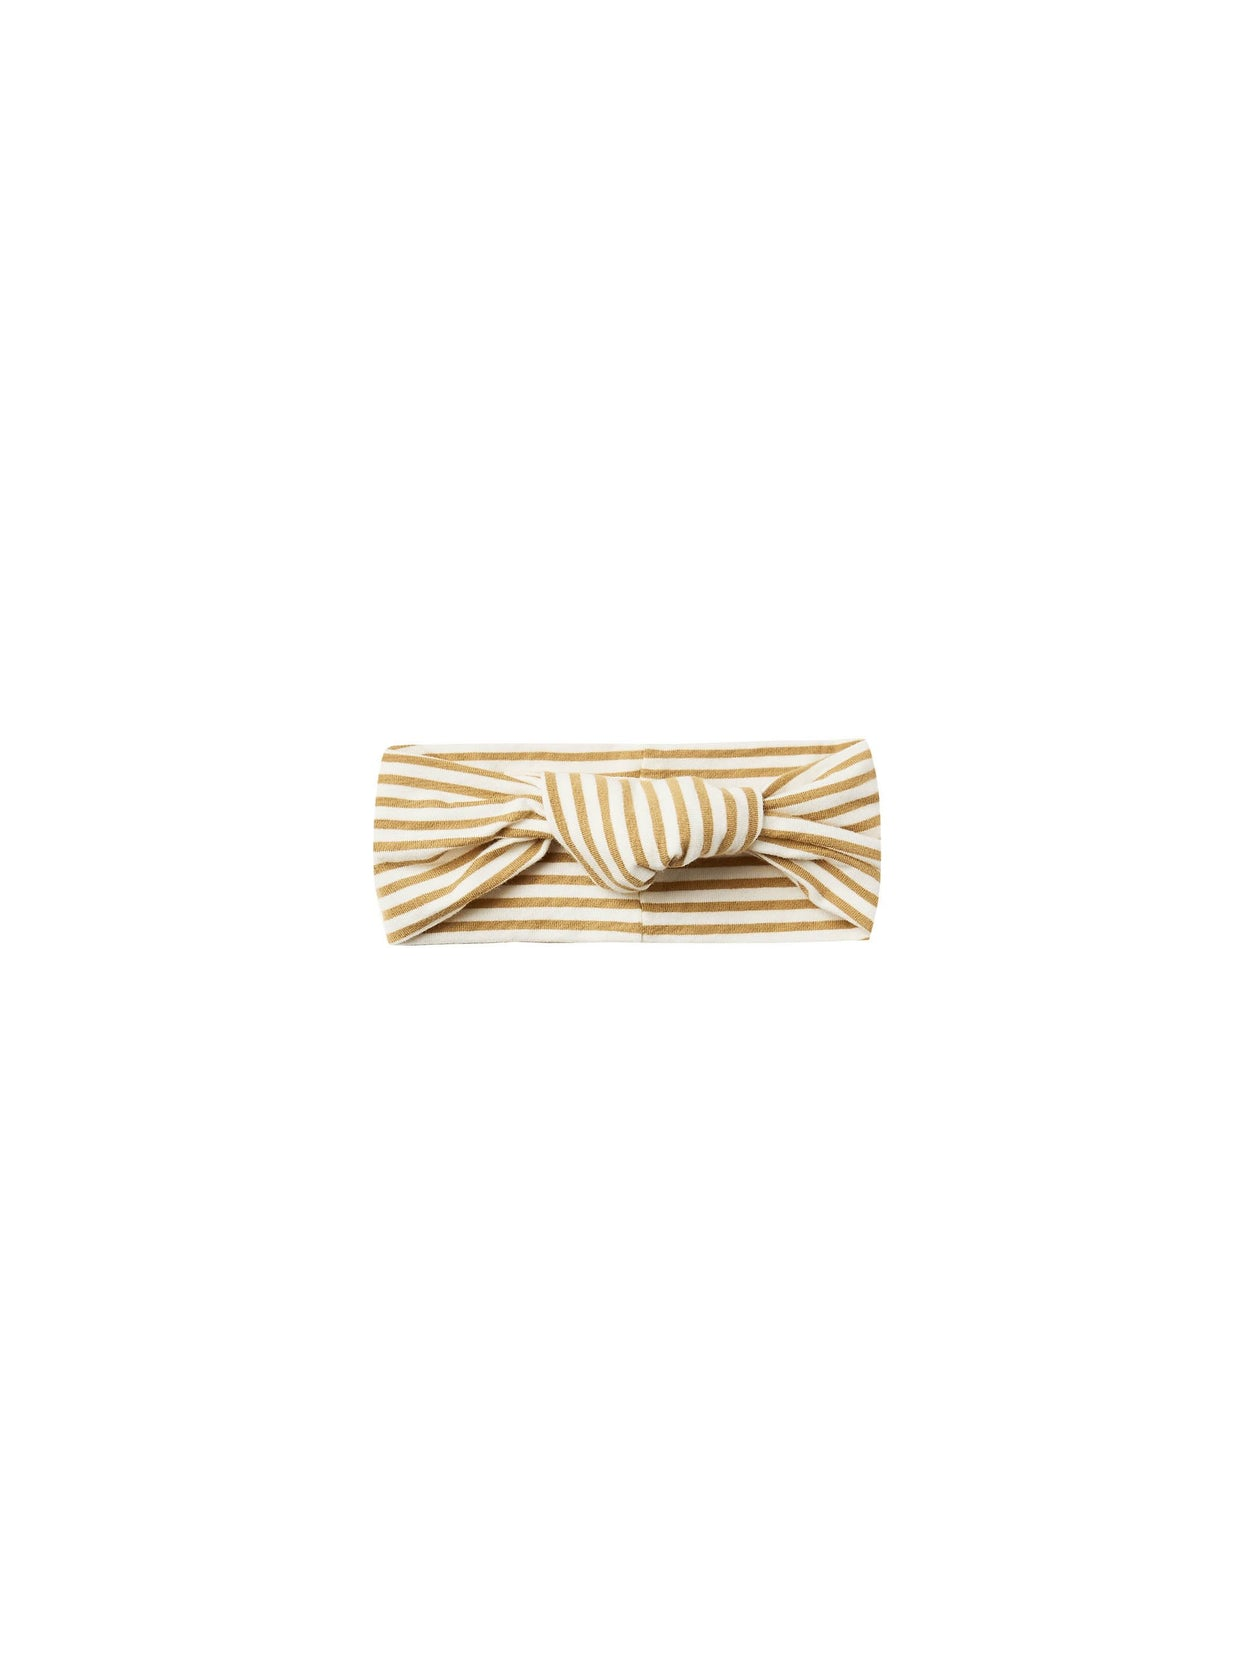 Quincy Mae Baby Turban Gold Stripe